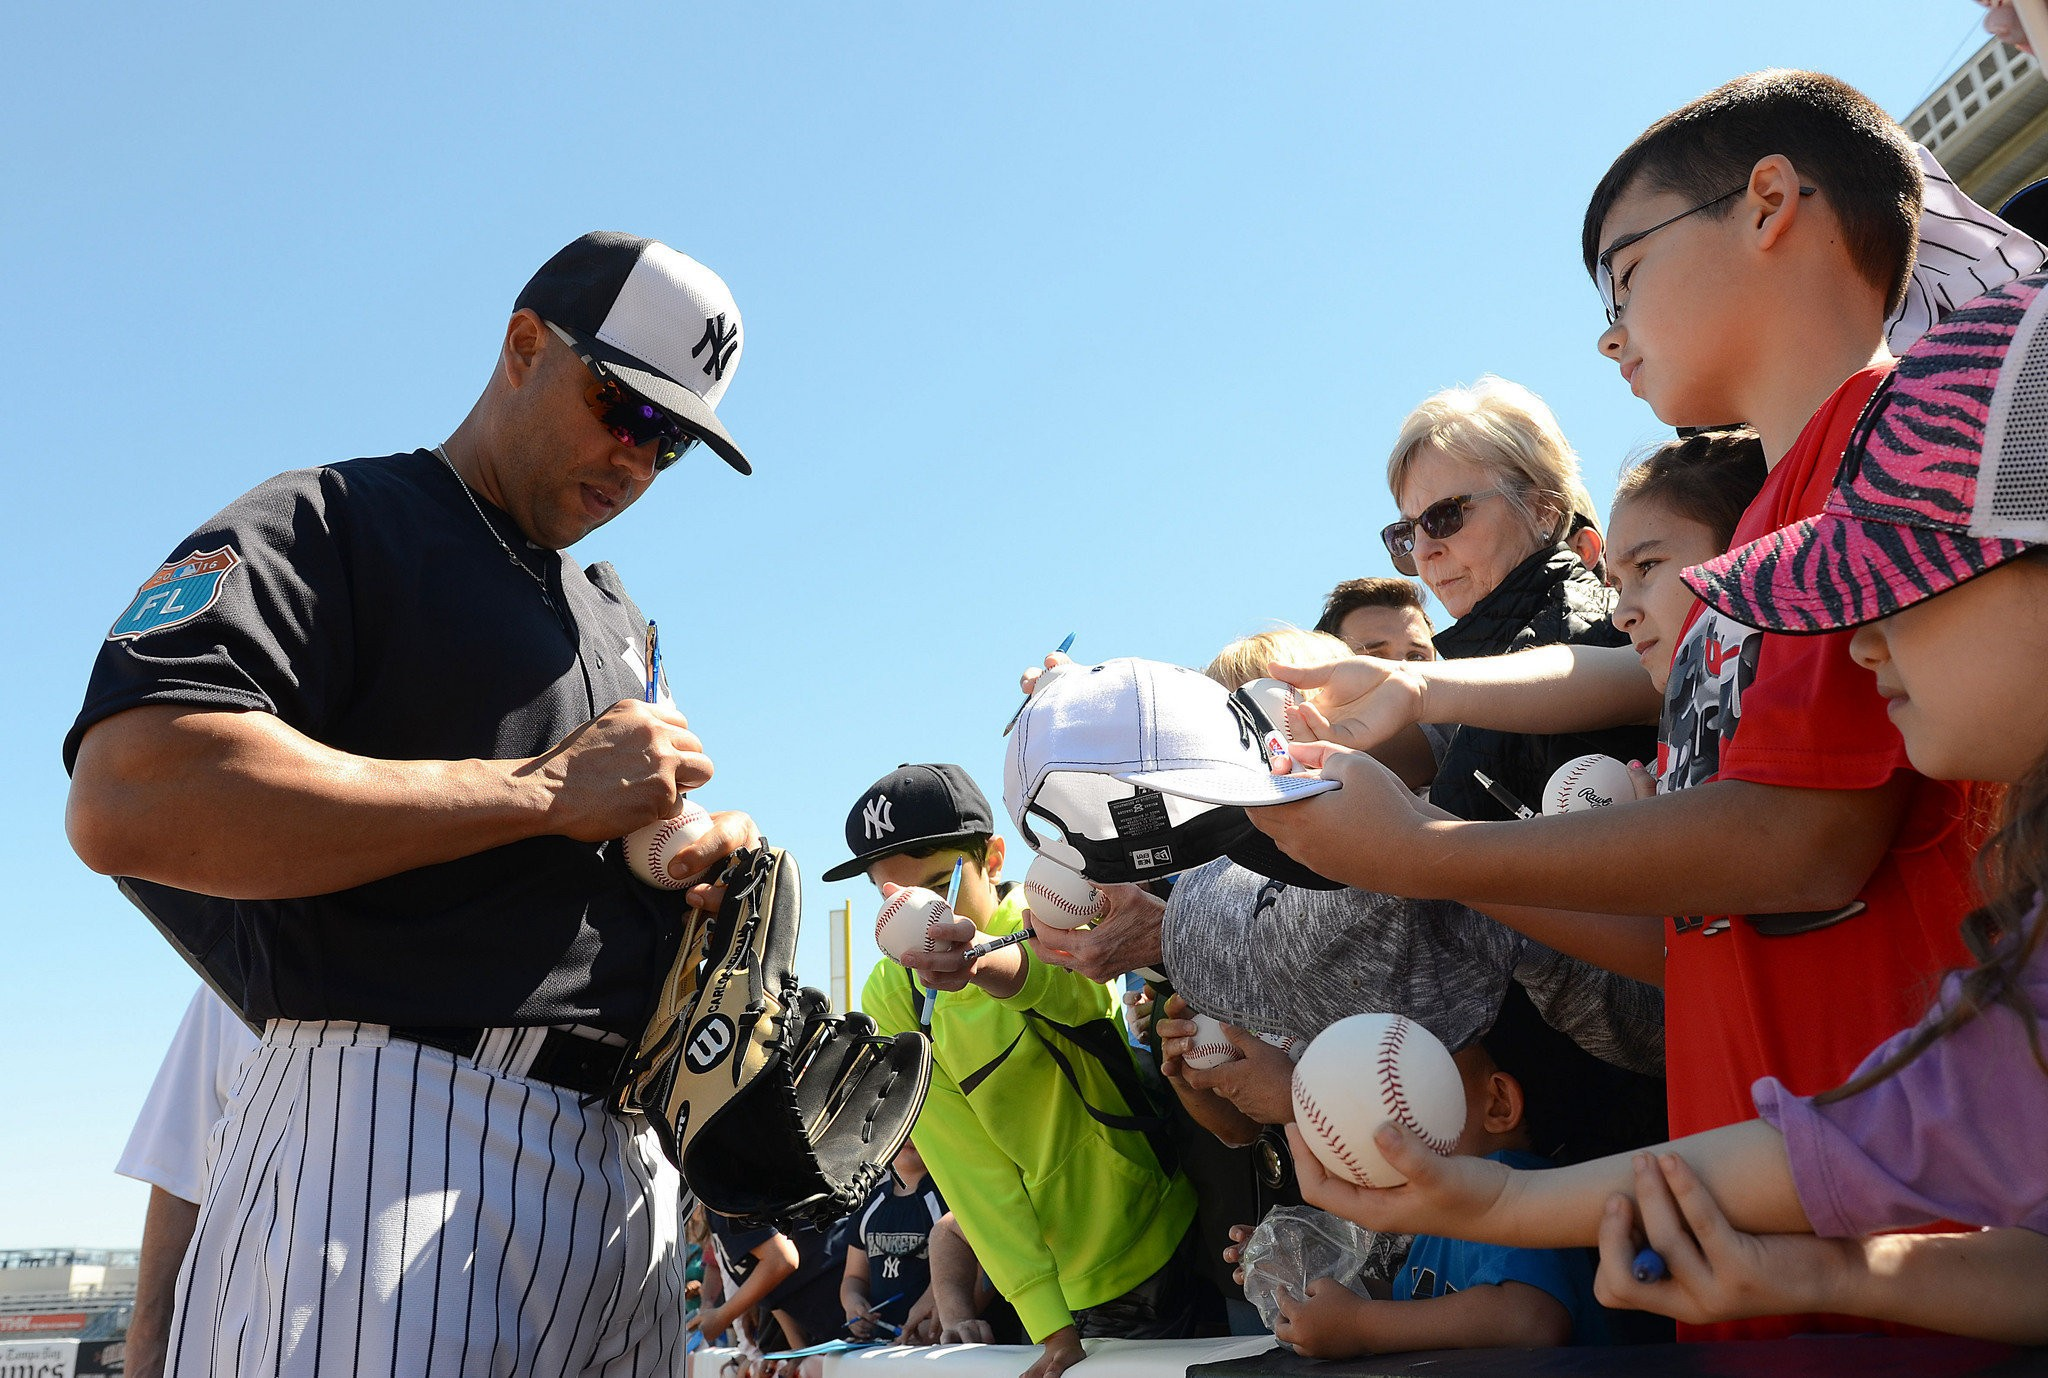 Why Yankees Carlos Beltran Might Look A Bit Different In